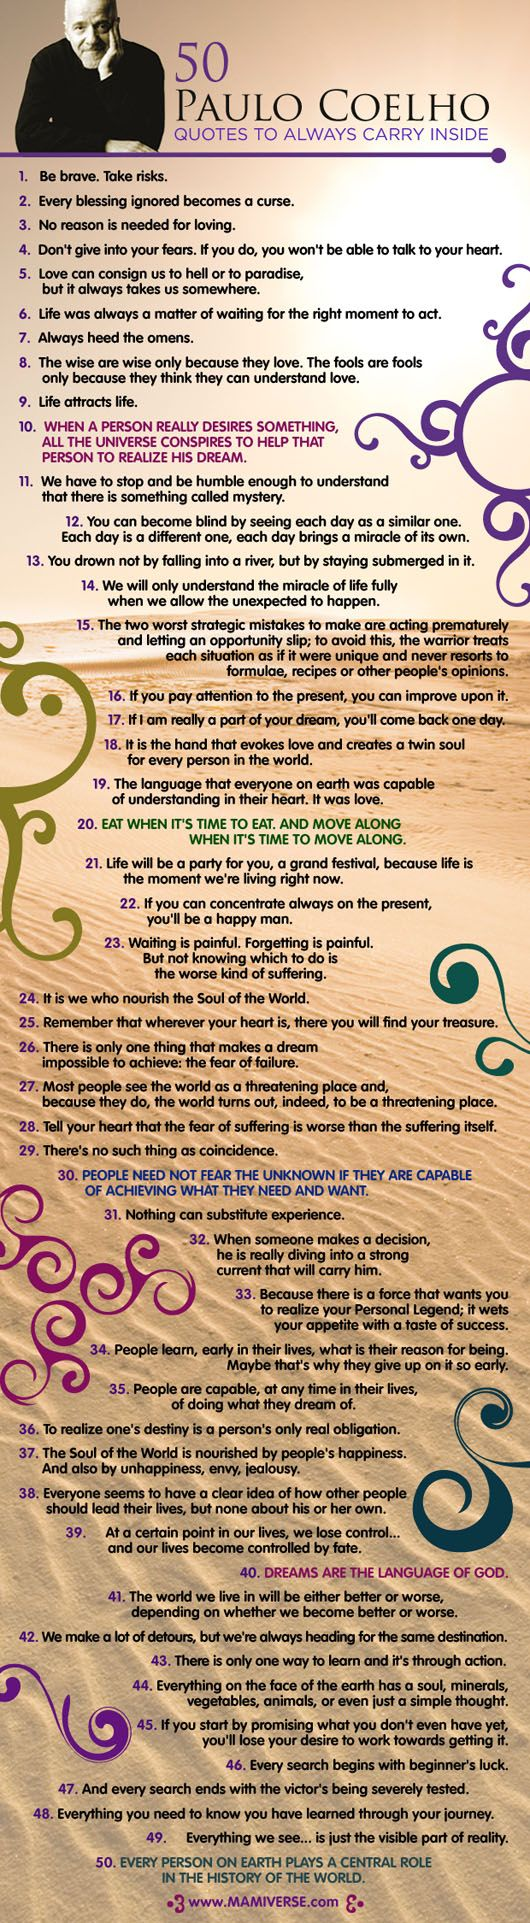 Paulo Coelho inspired..50 Quotes to make Your Day !